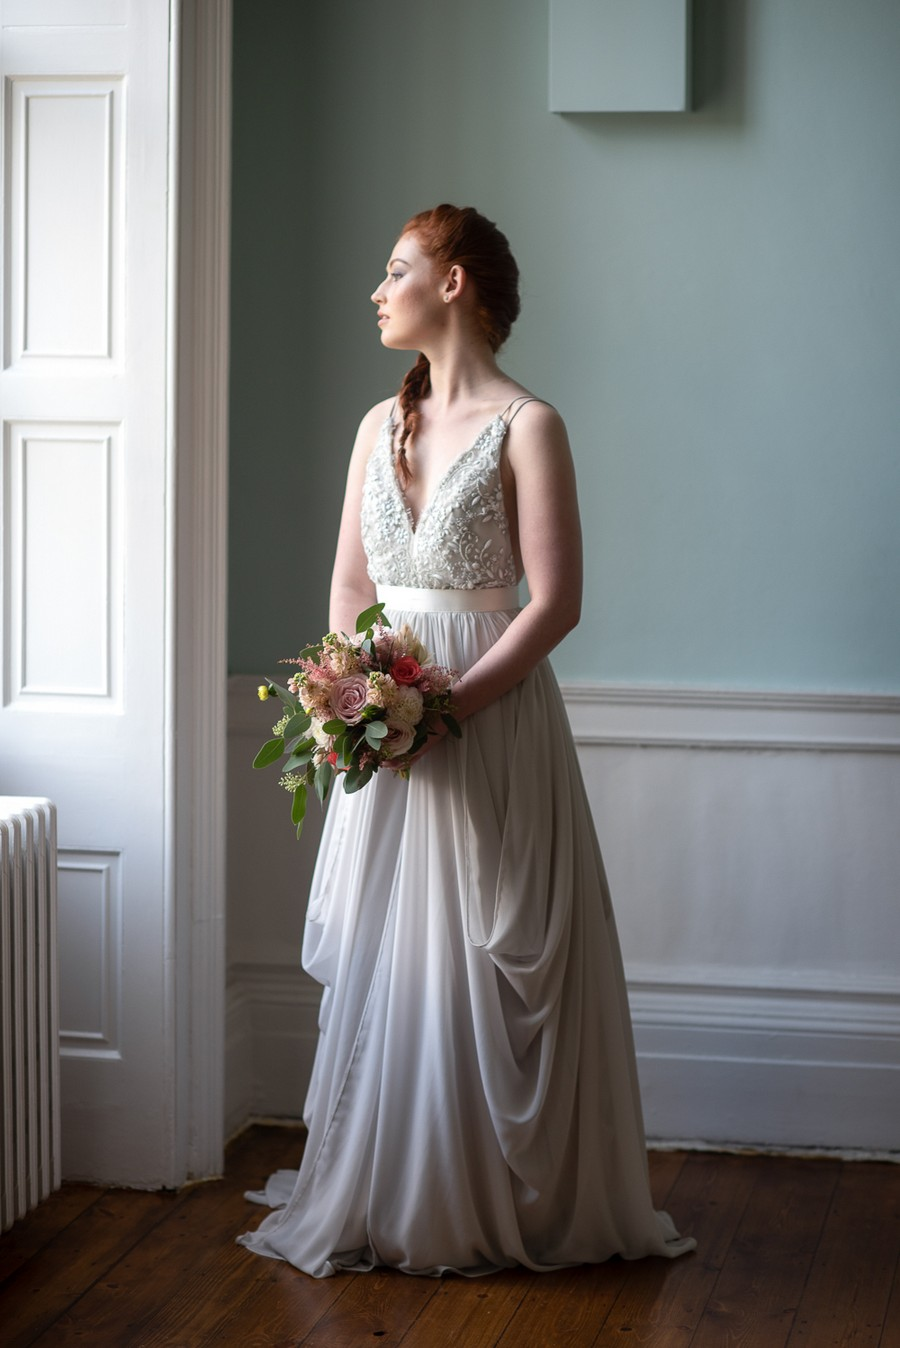 Beautiful fairytale wedding ideas from Clissold Park on English Wedding. Image credit Eva Tarnok Photography (7)